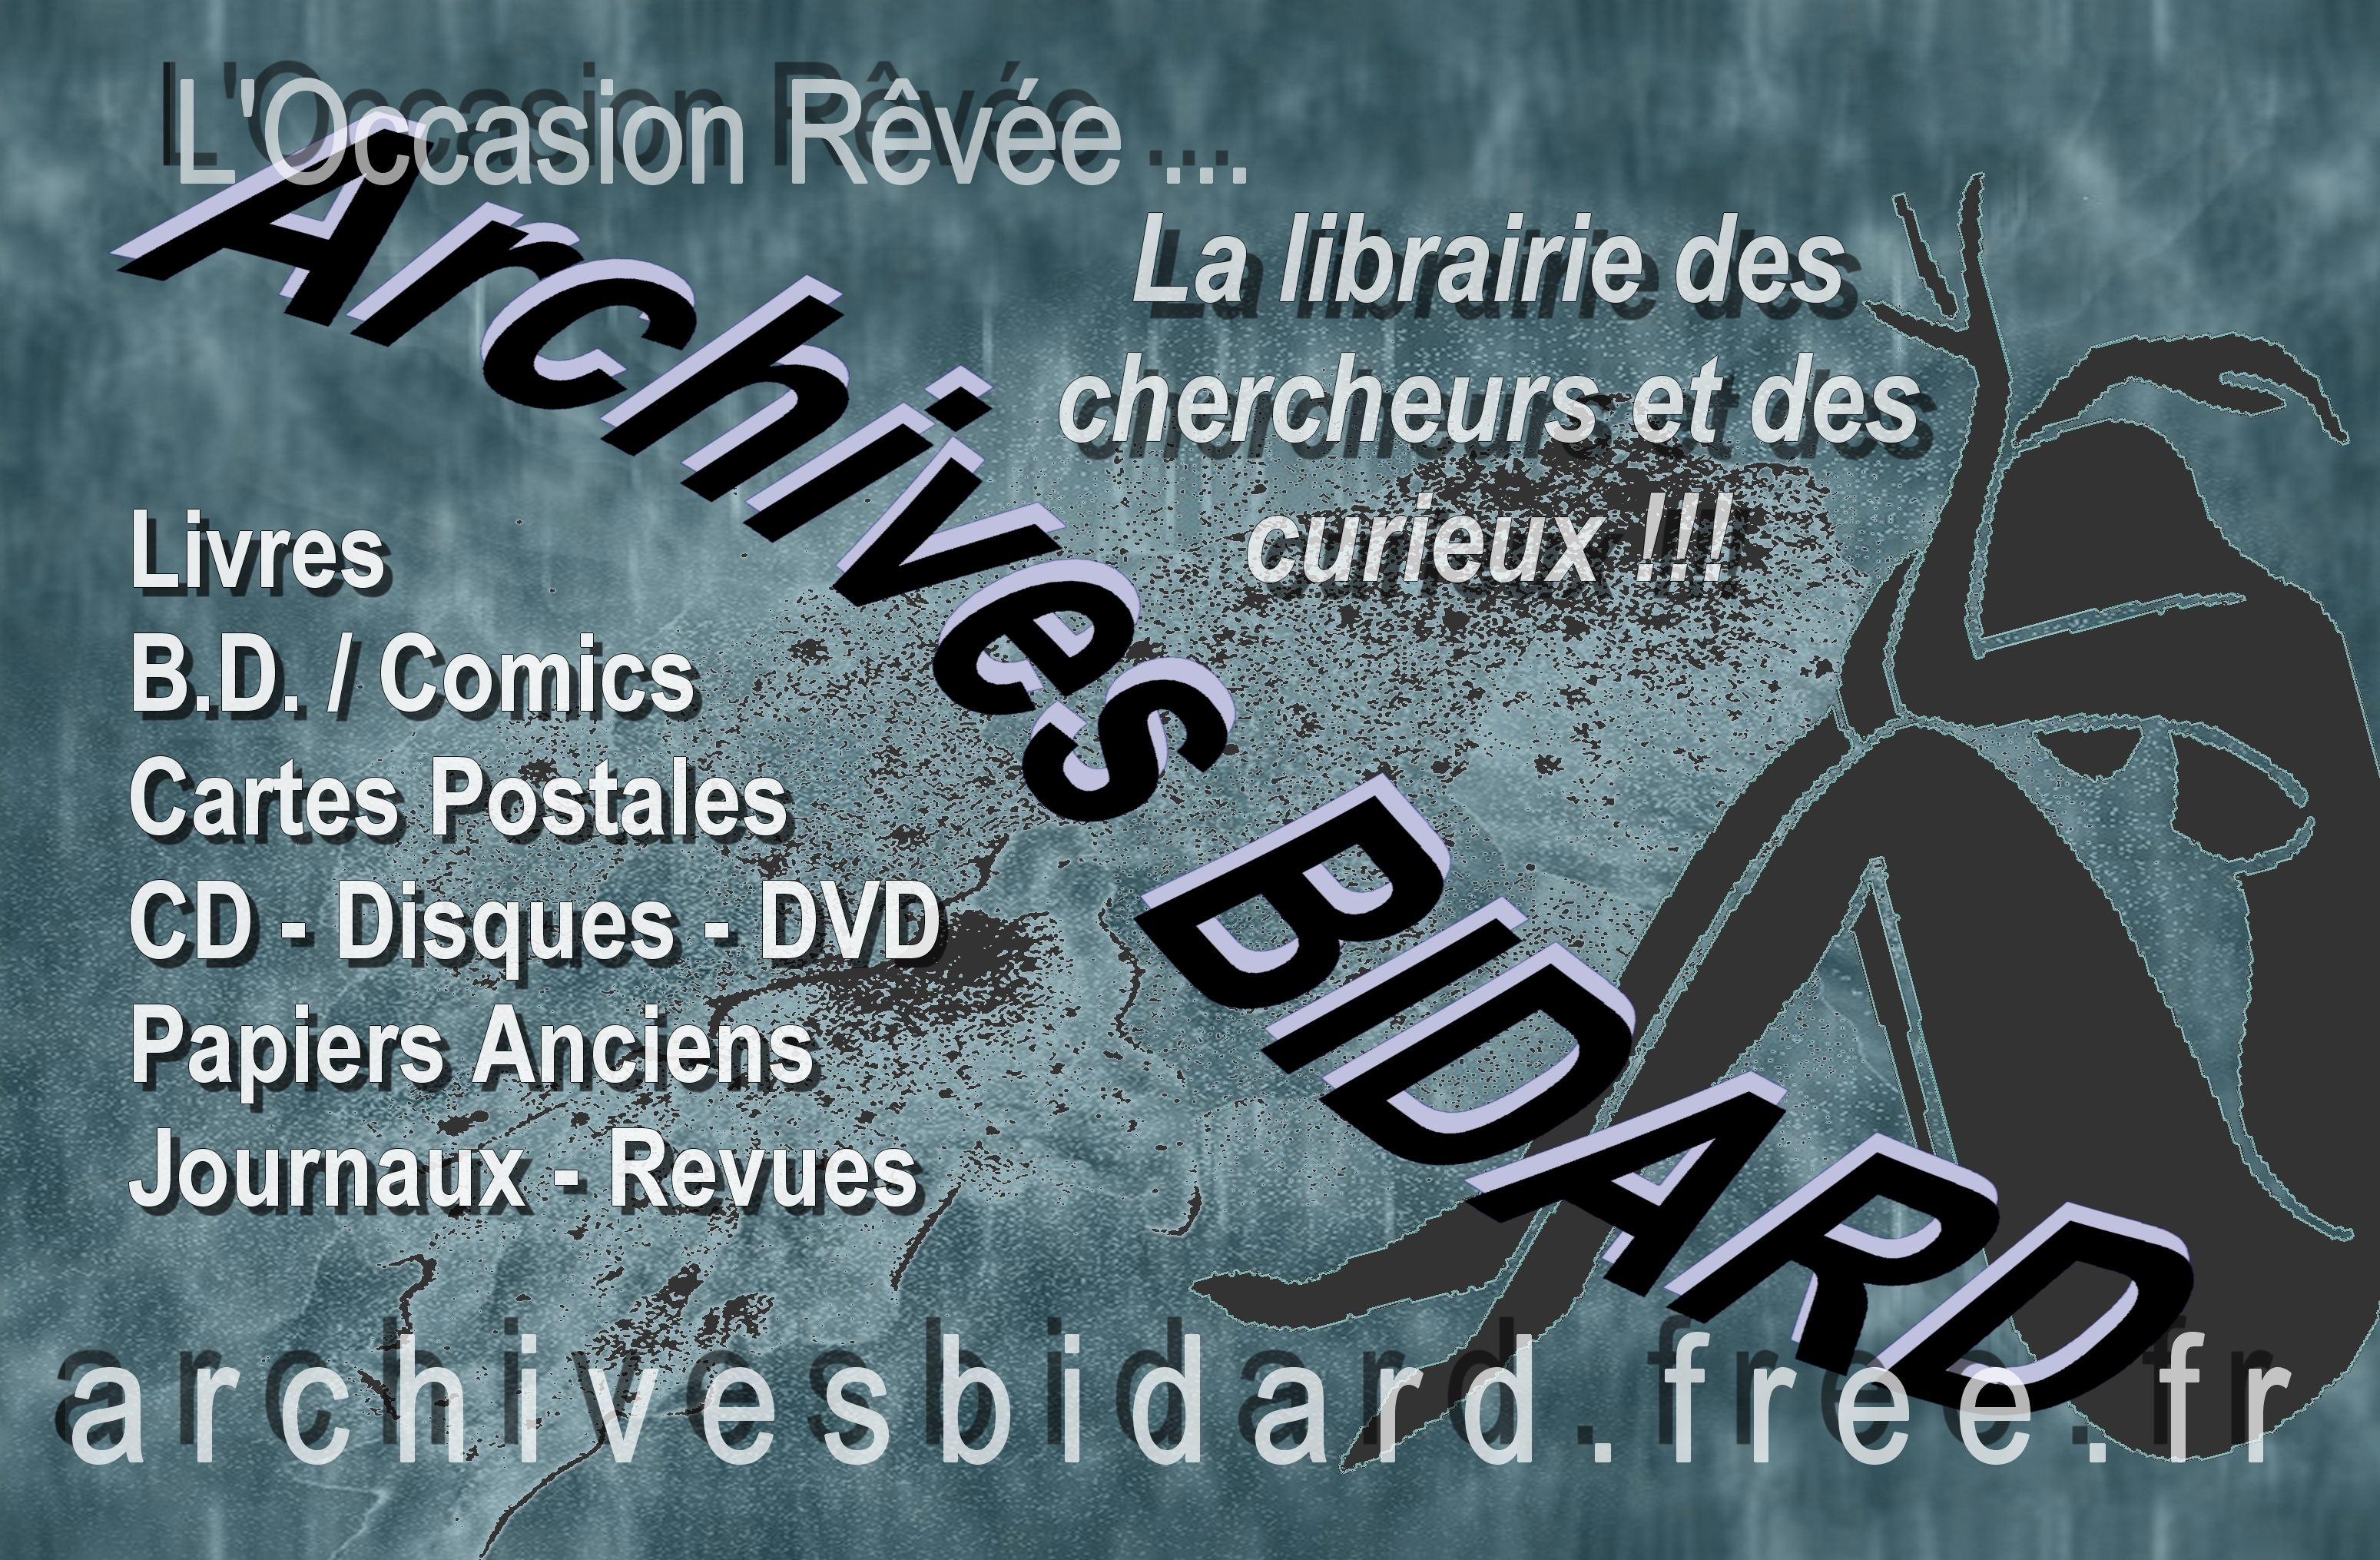 Archives BIDARD - Documents anciens - GRANVILLE - TROUVILLE SUR MER